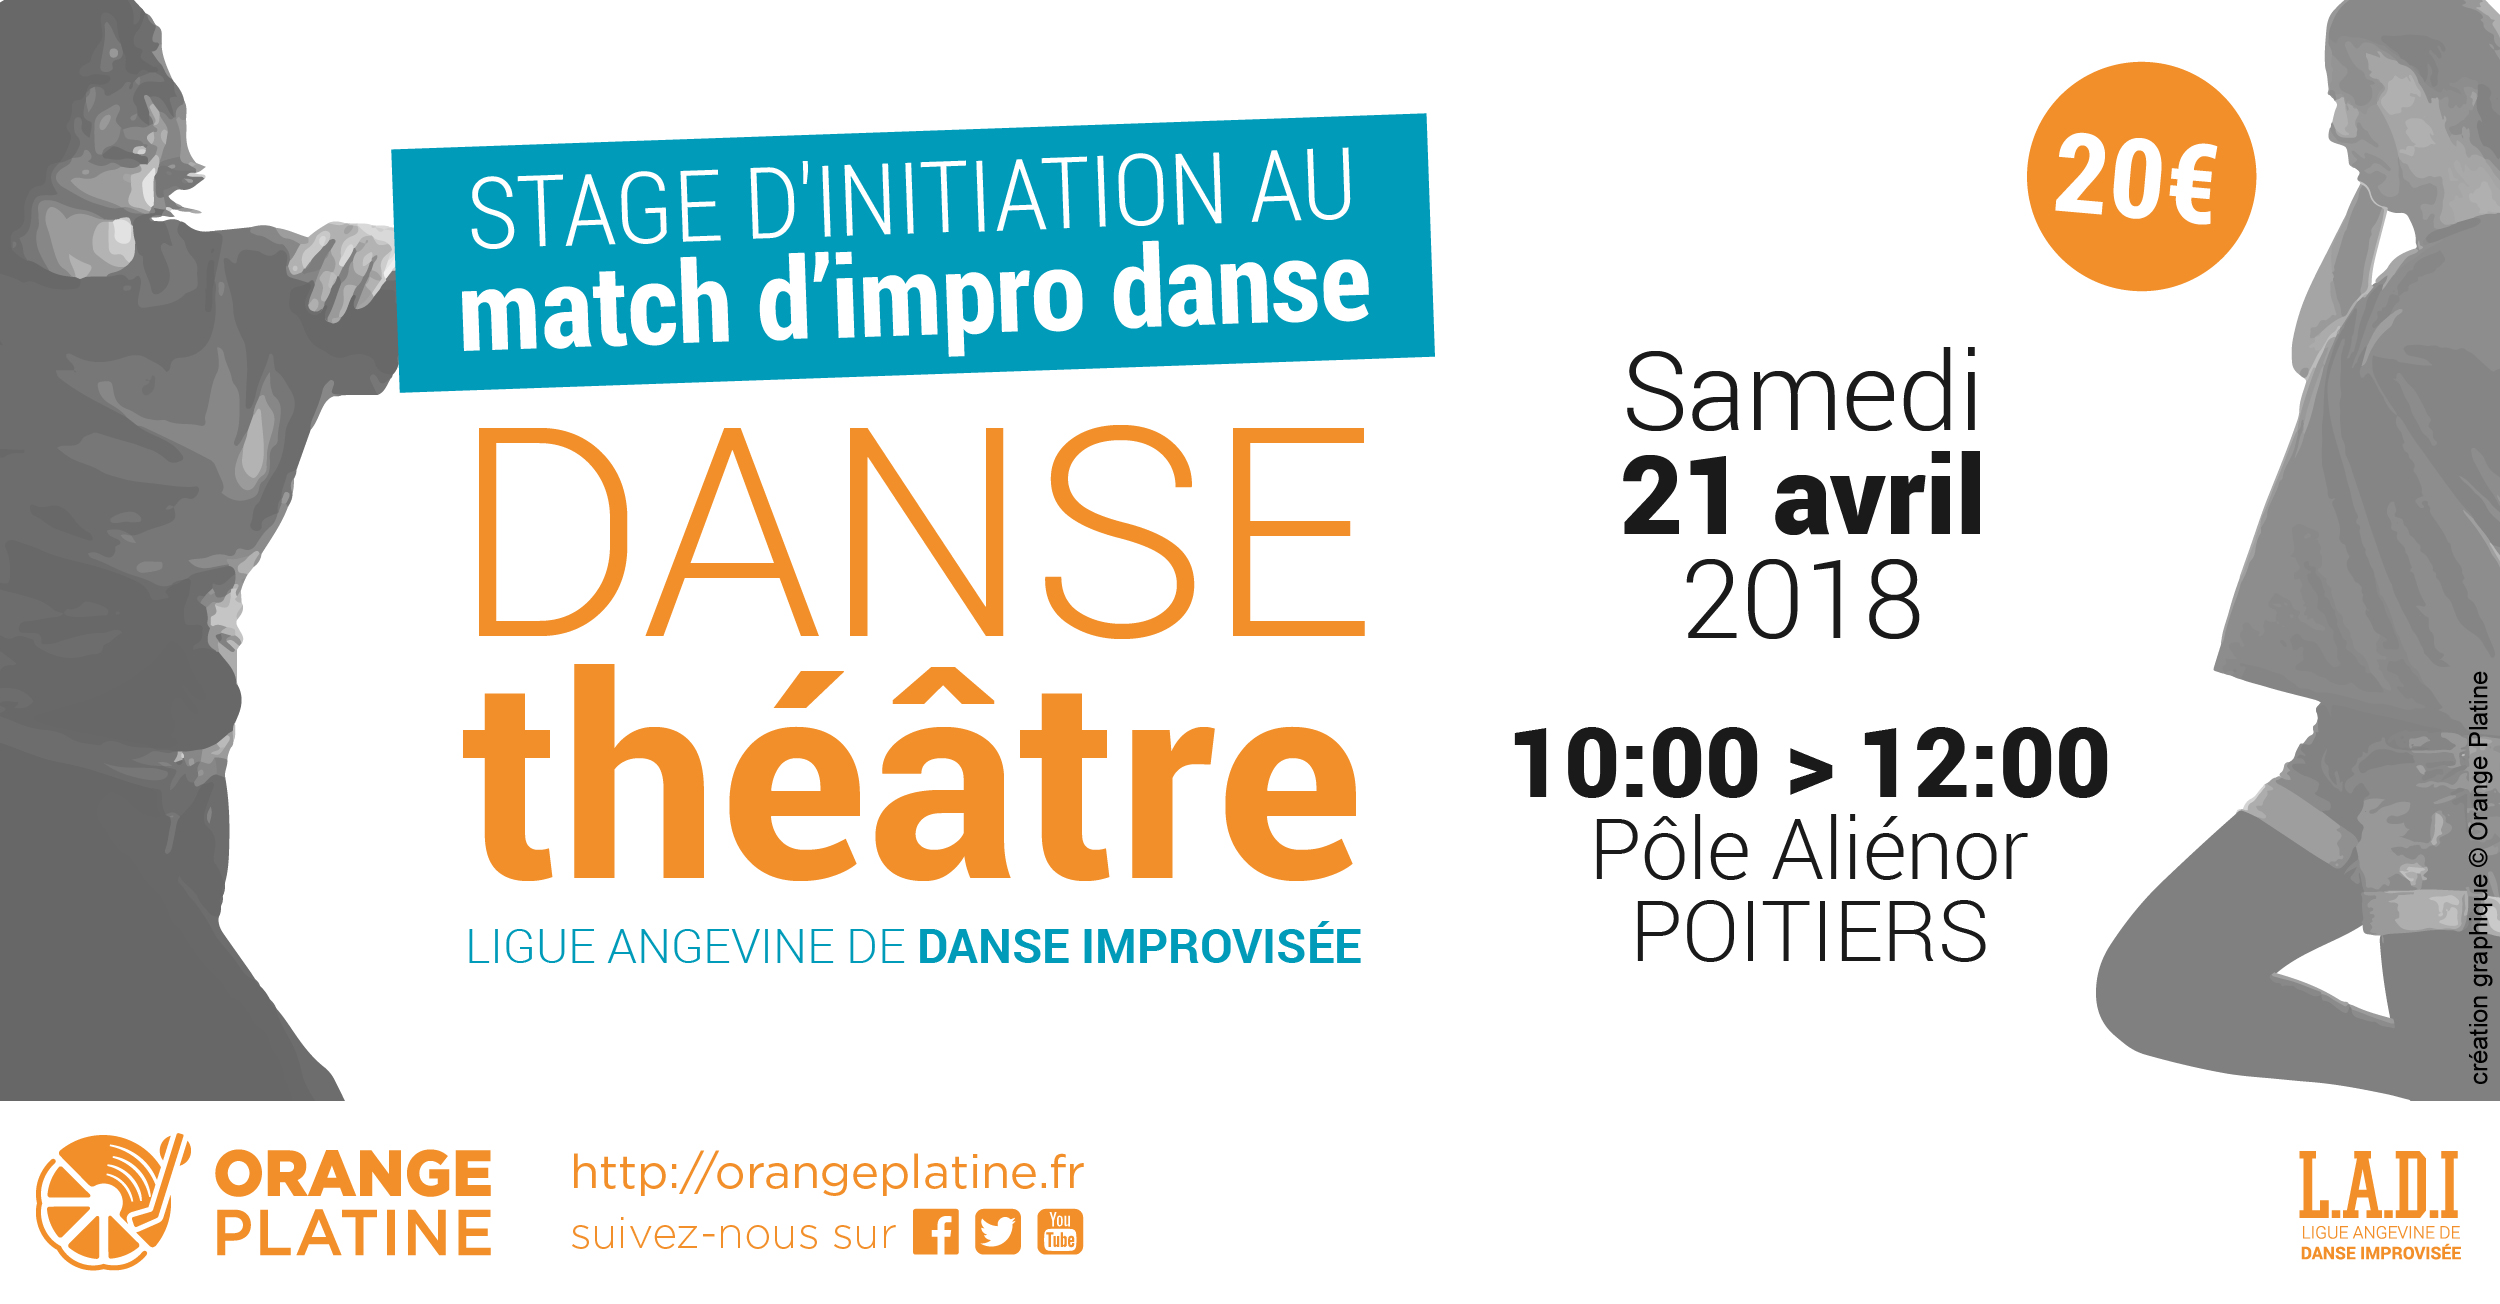 Stage de match d'impro danse - 21 avril 2018